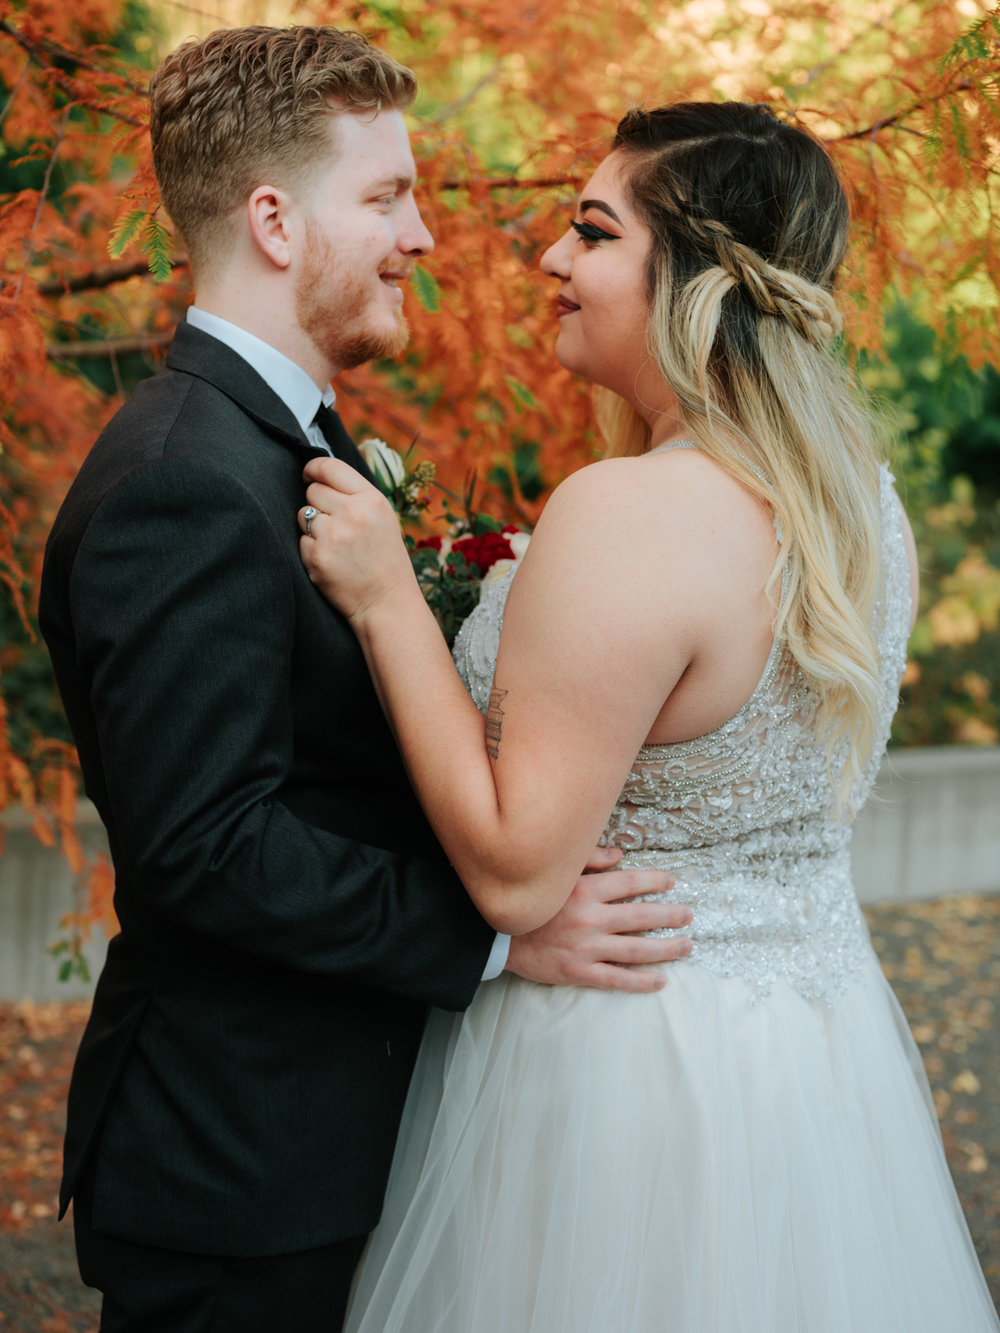 Stolen Glimpses Seattle Wedding Photographers 37.jpg